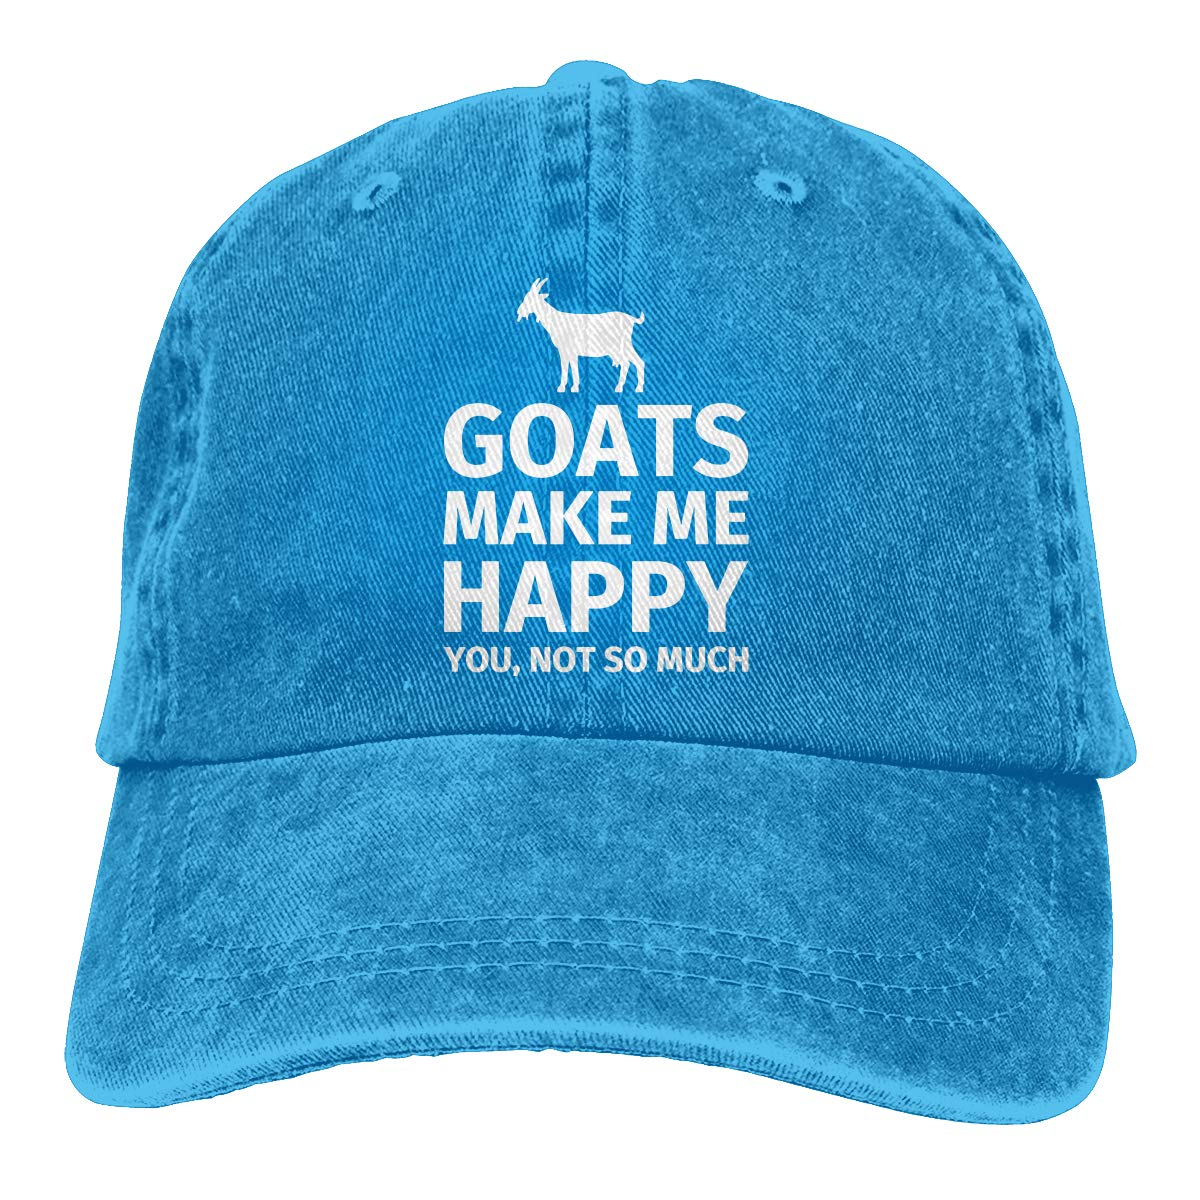 Goats Makes Me Happy You Not So Much Fashion Adjustable Cowboy Cap Baseball Cap for Women and Men